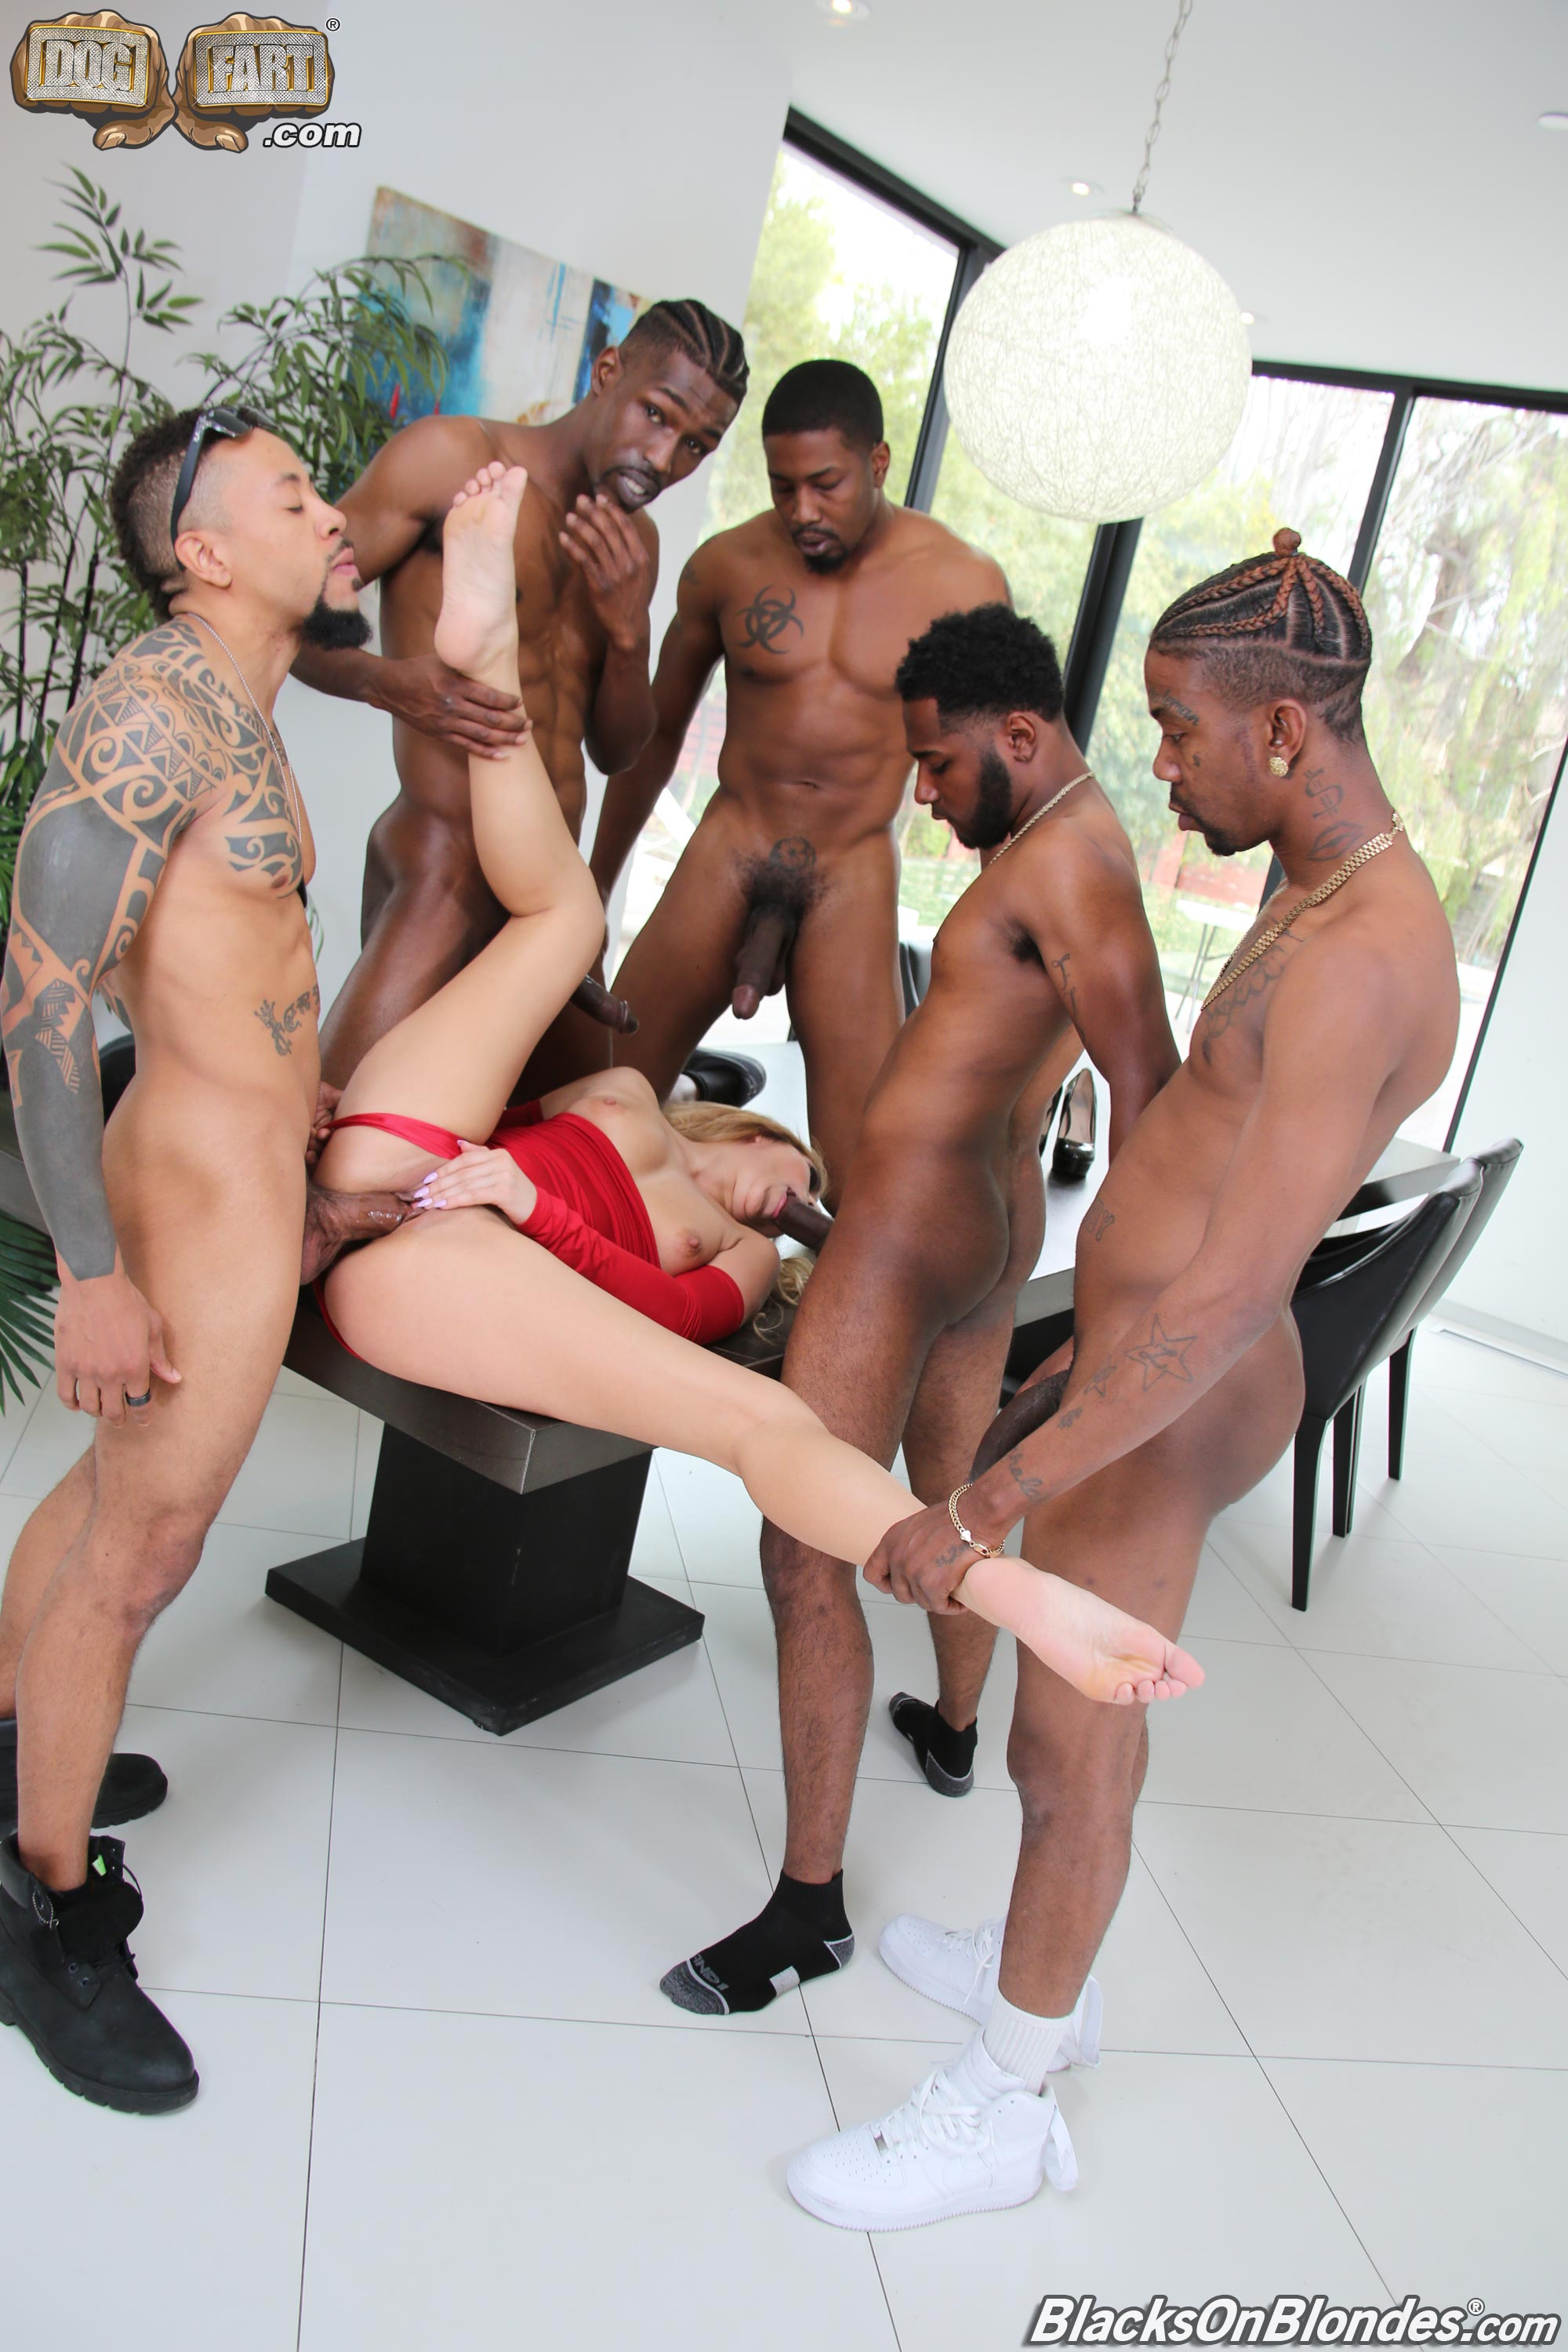 Dogfart 'Moka Mora - Blacks On Blondes' starring Moka Mora (photo 14)